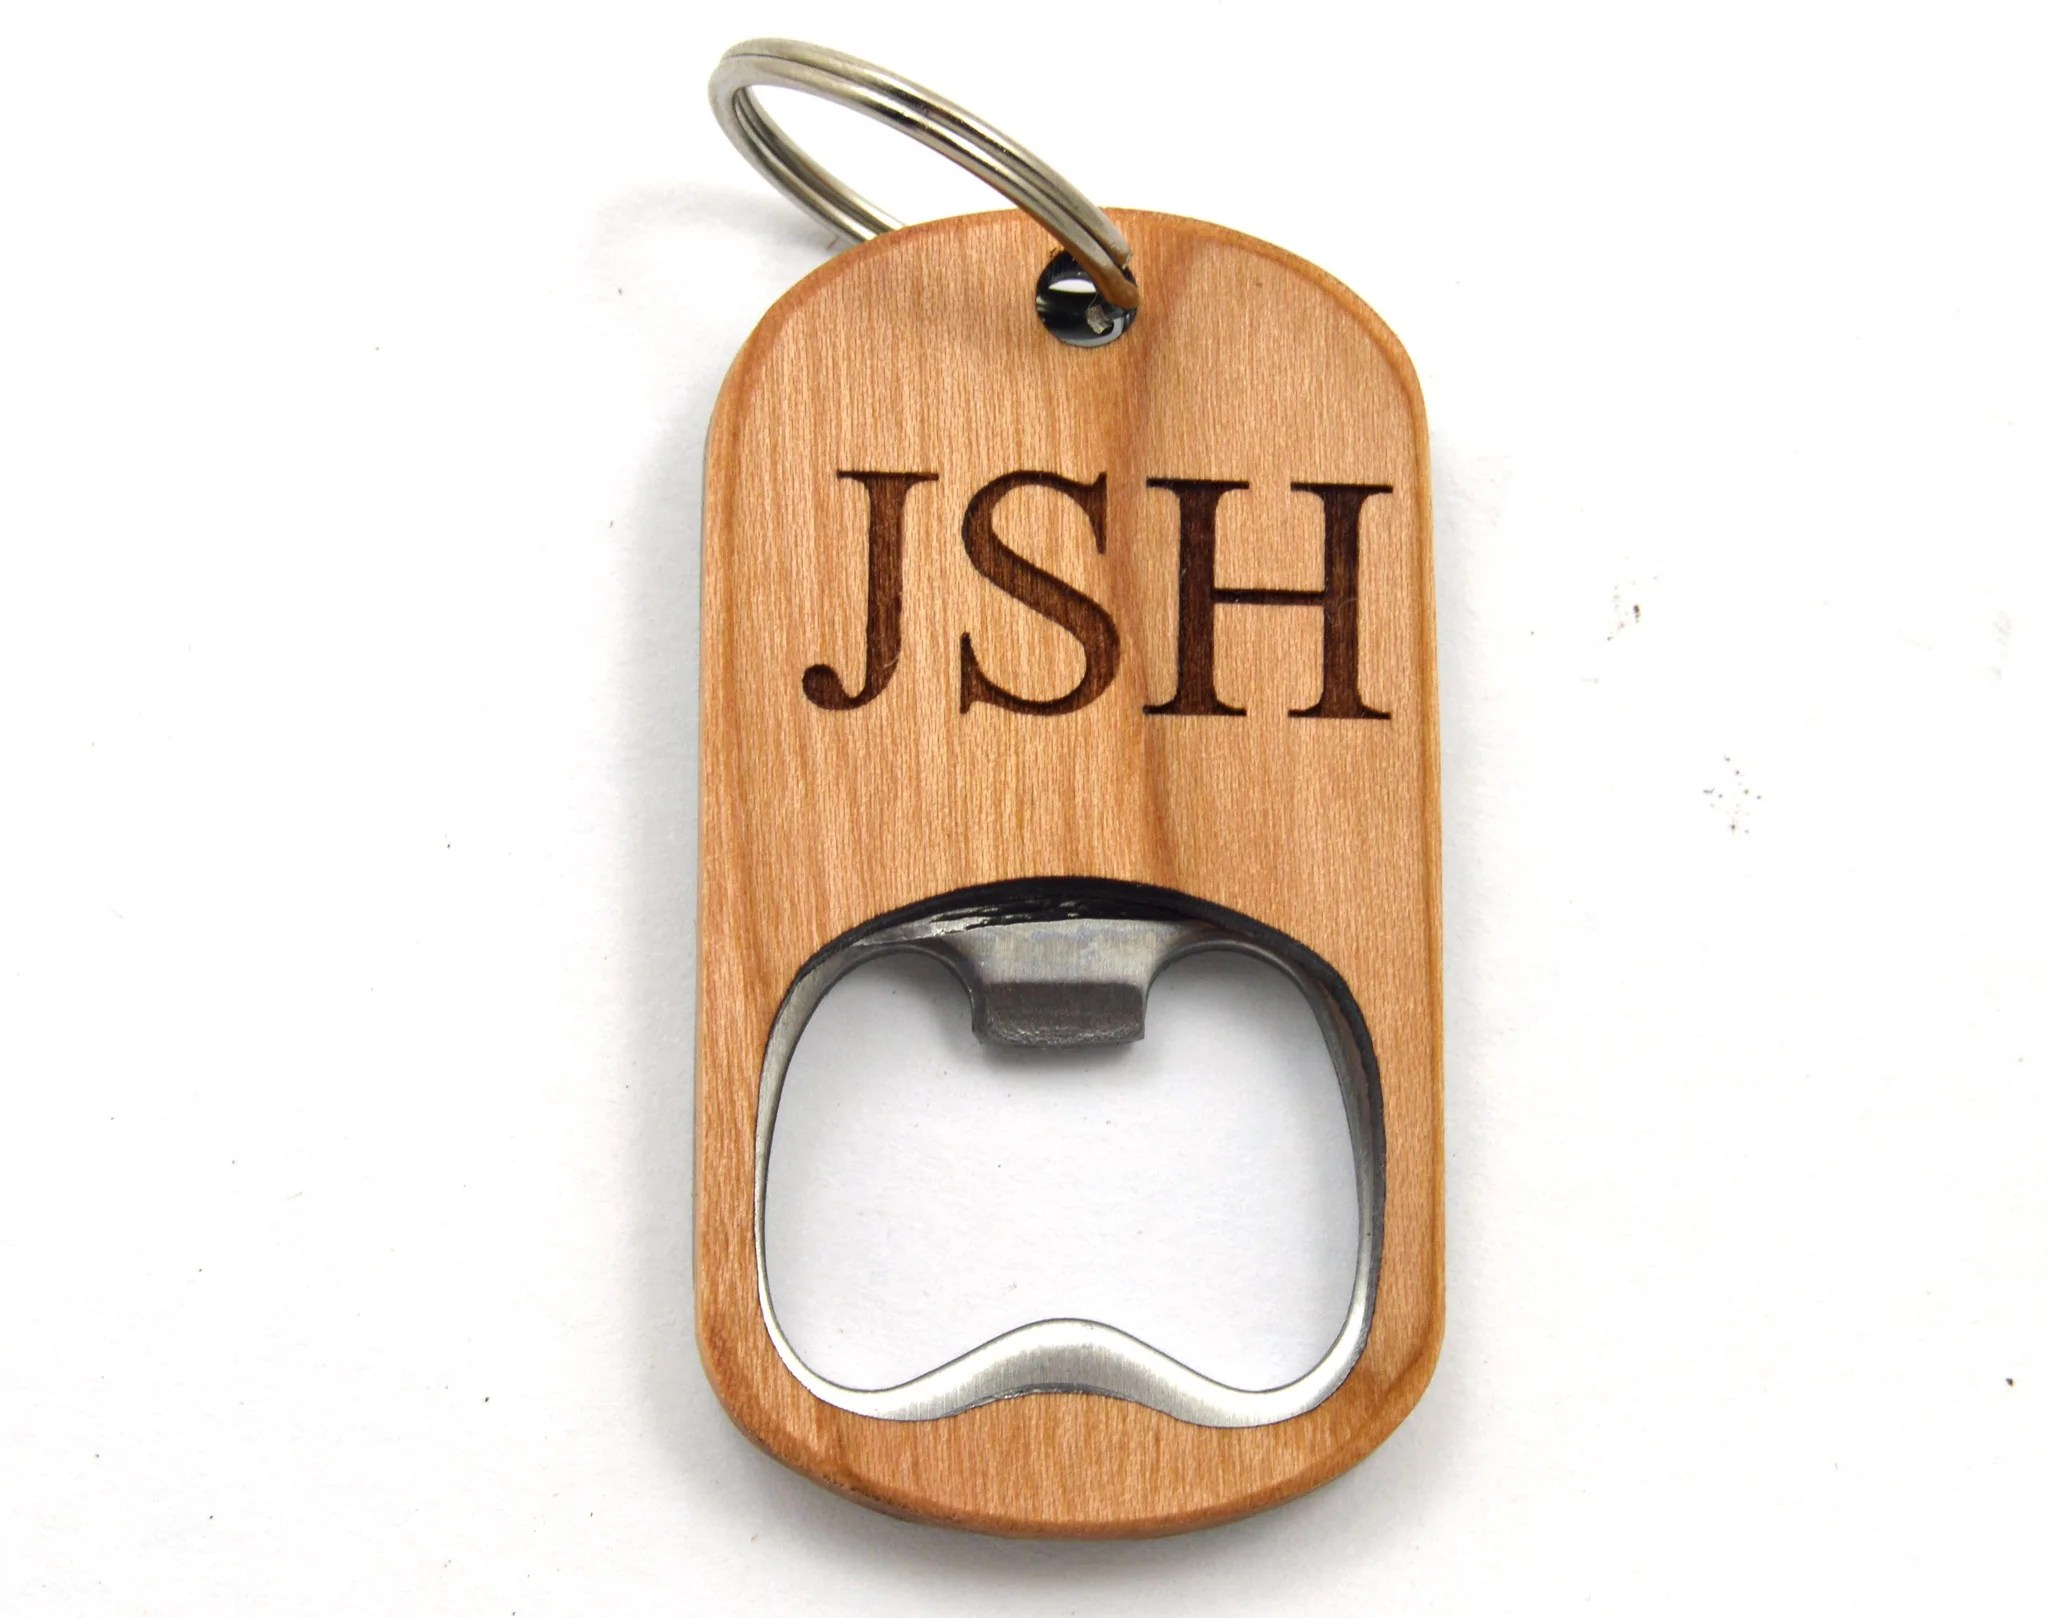 Relieving Custom Engraving Custom Key Chain Wooden Bottle Opener From Wood Reserve Custom Bottle Openers Ireland Custom Bottle Openers Corkscrew Wooden Key Chain Bottle Opener custom Custom Bottle Openers